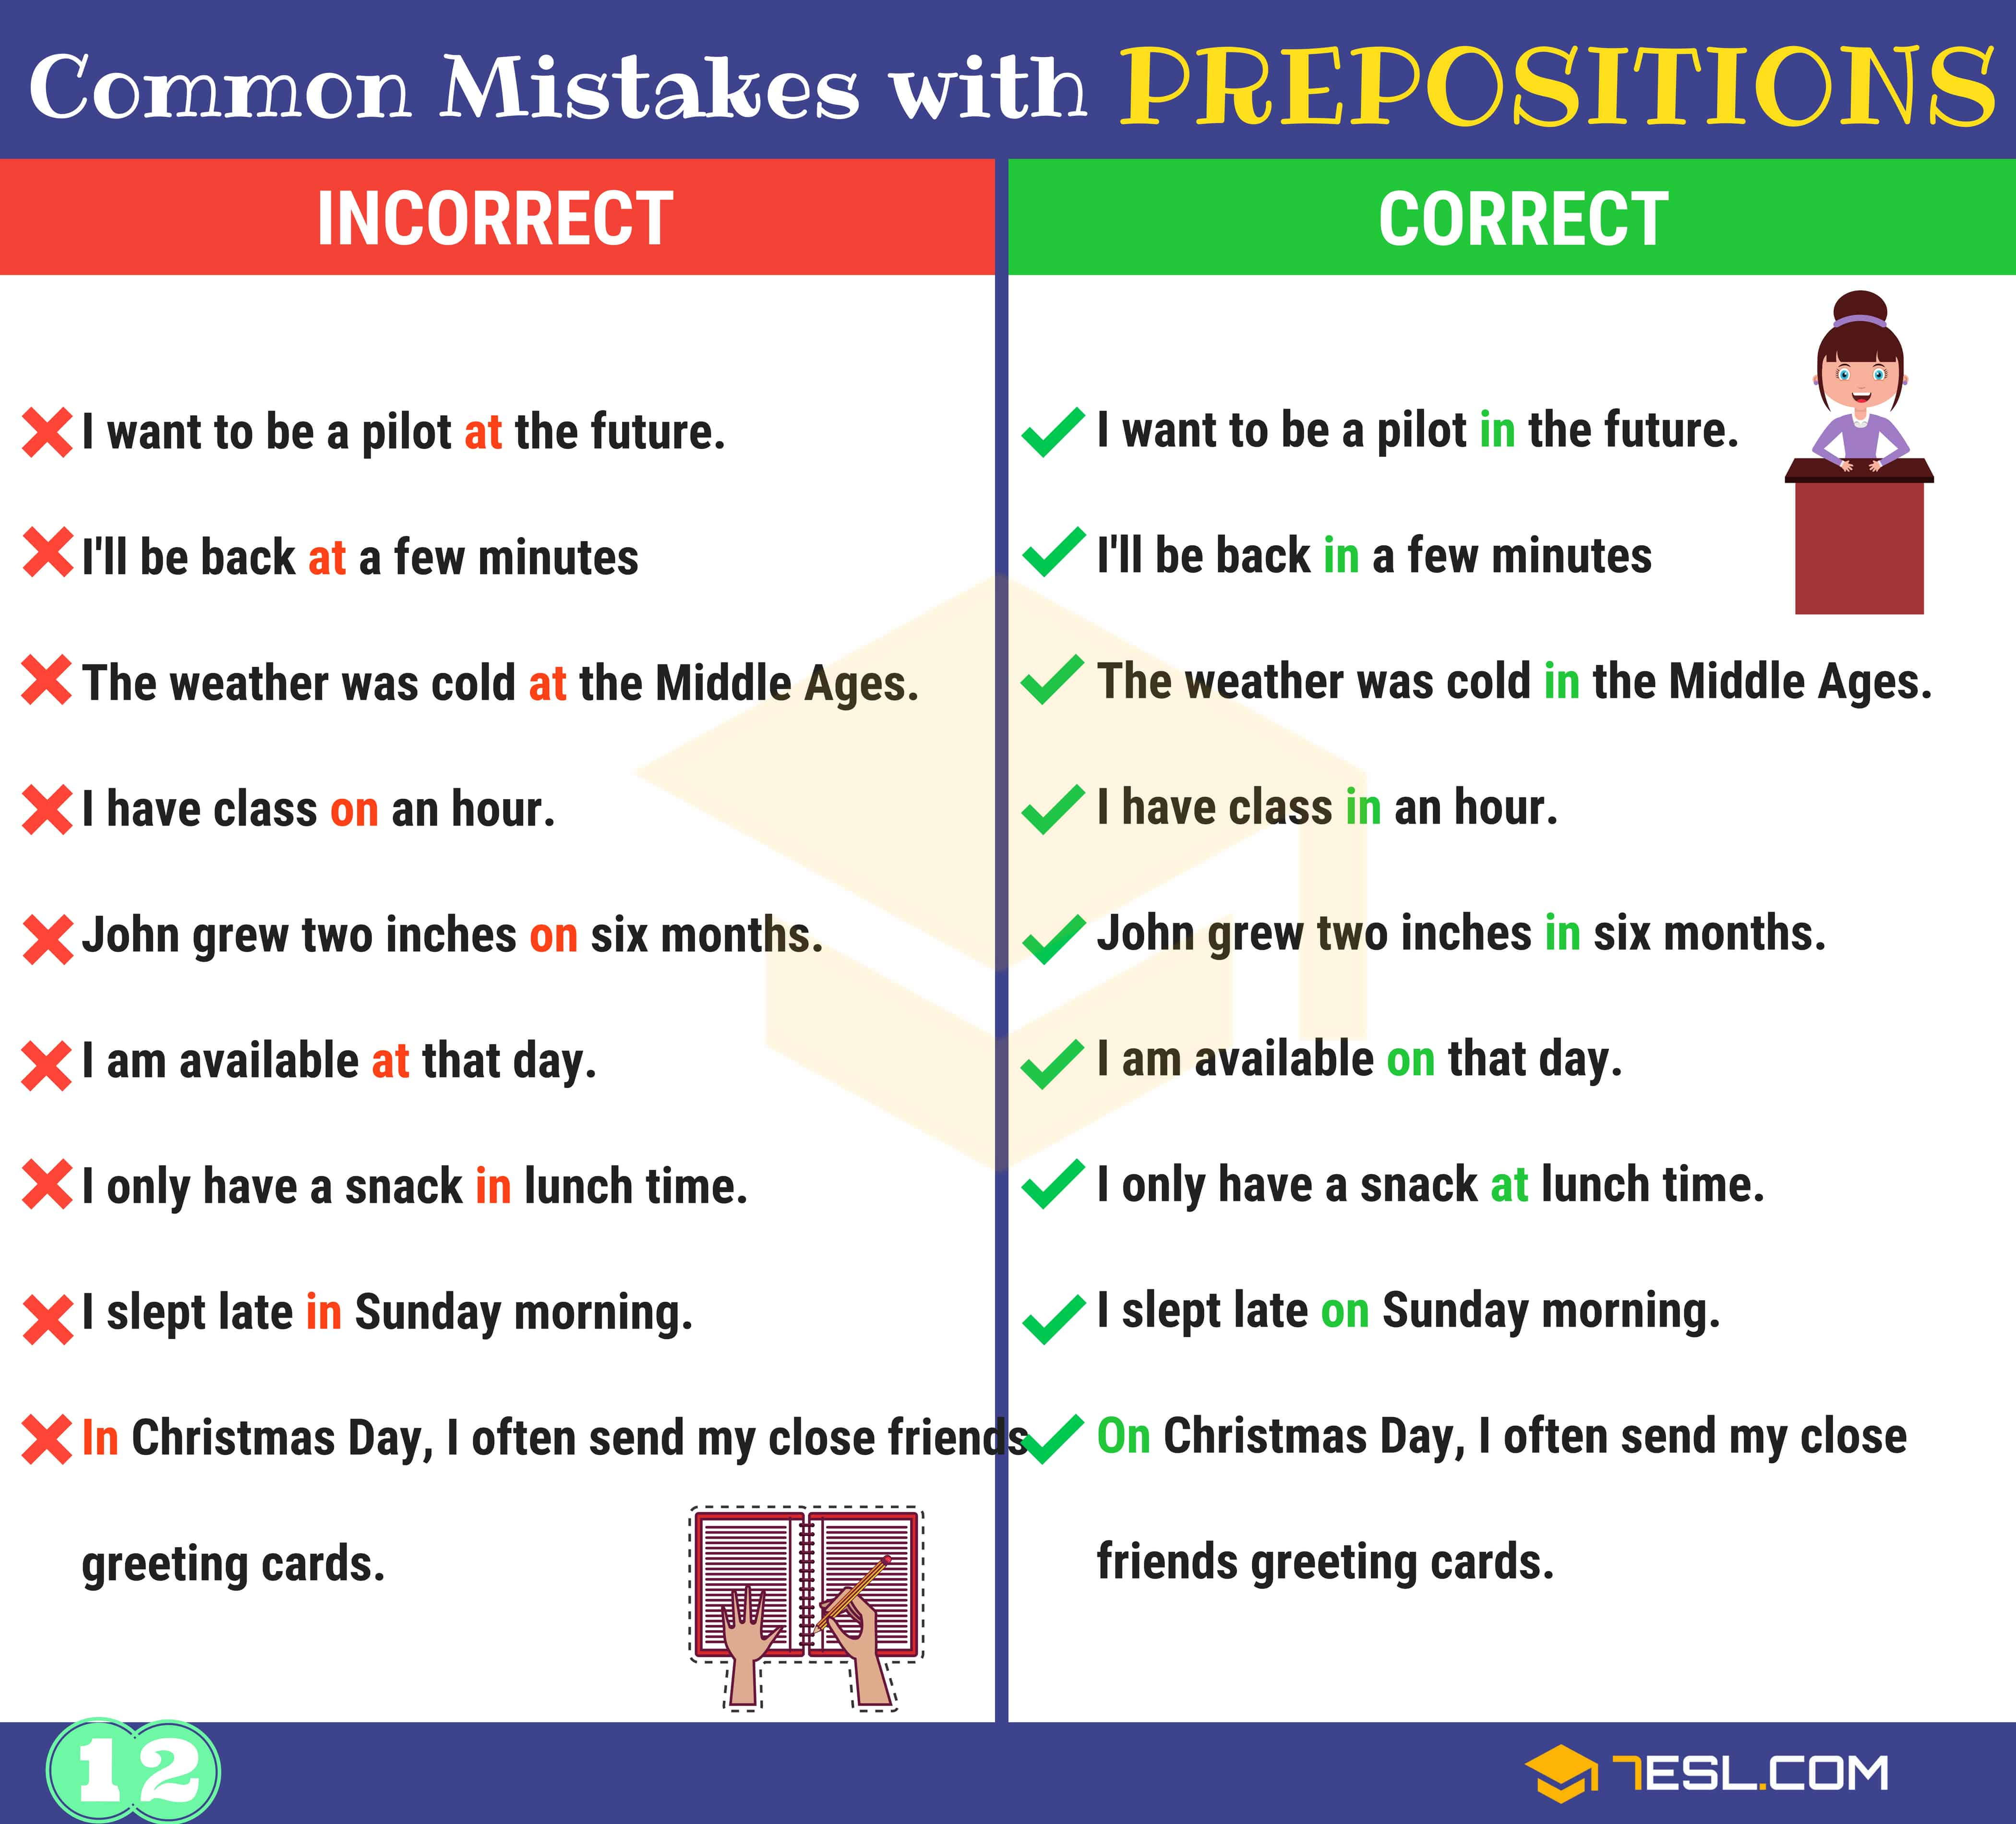 130+ Common MISTAKES With PREPOSITIONS And How To Avoid Them 13